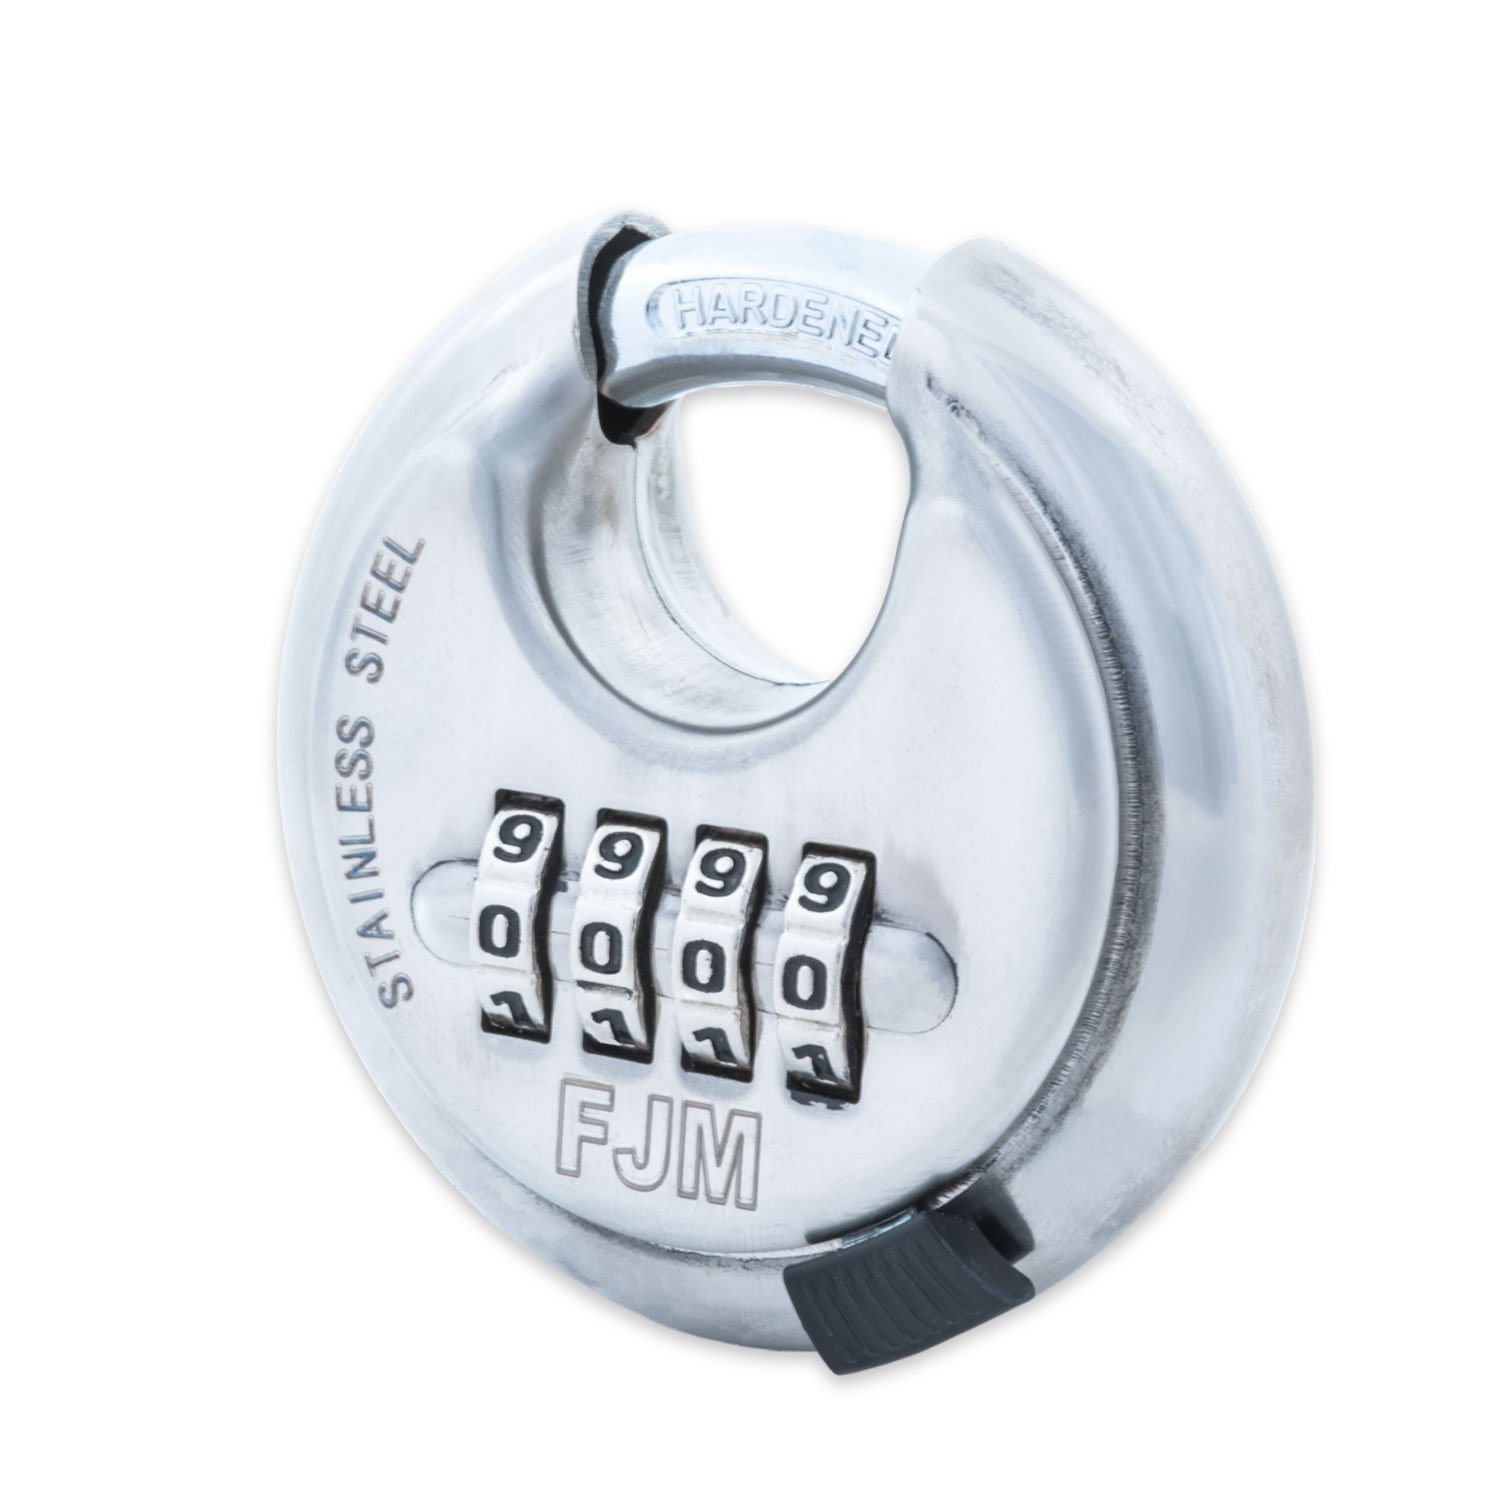 FJM Security SX-790 4-Dial Combination Disc Padlock With Shielded Hardened Steel Shackle and 10,000 Possible Combinations